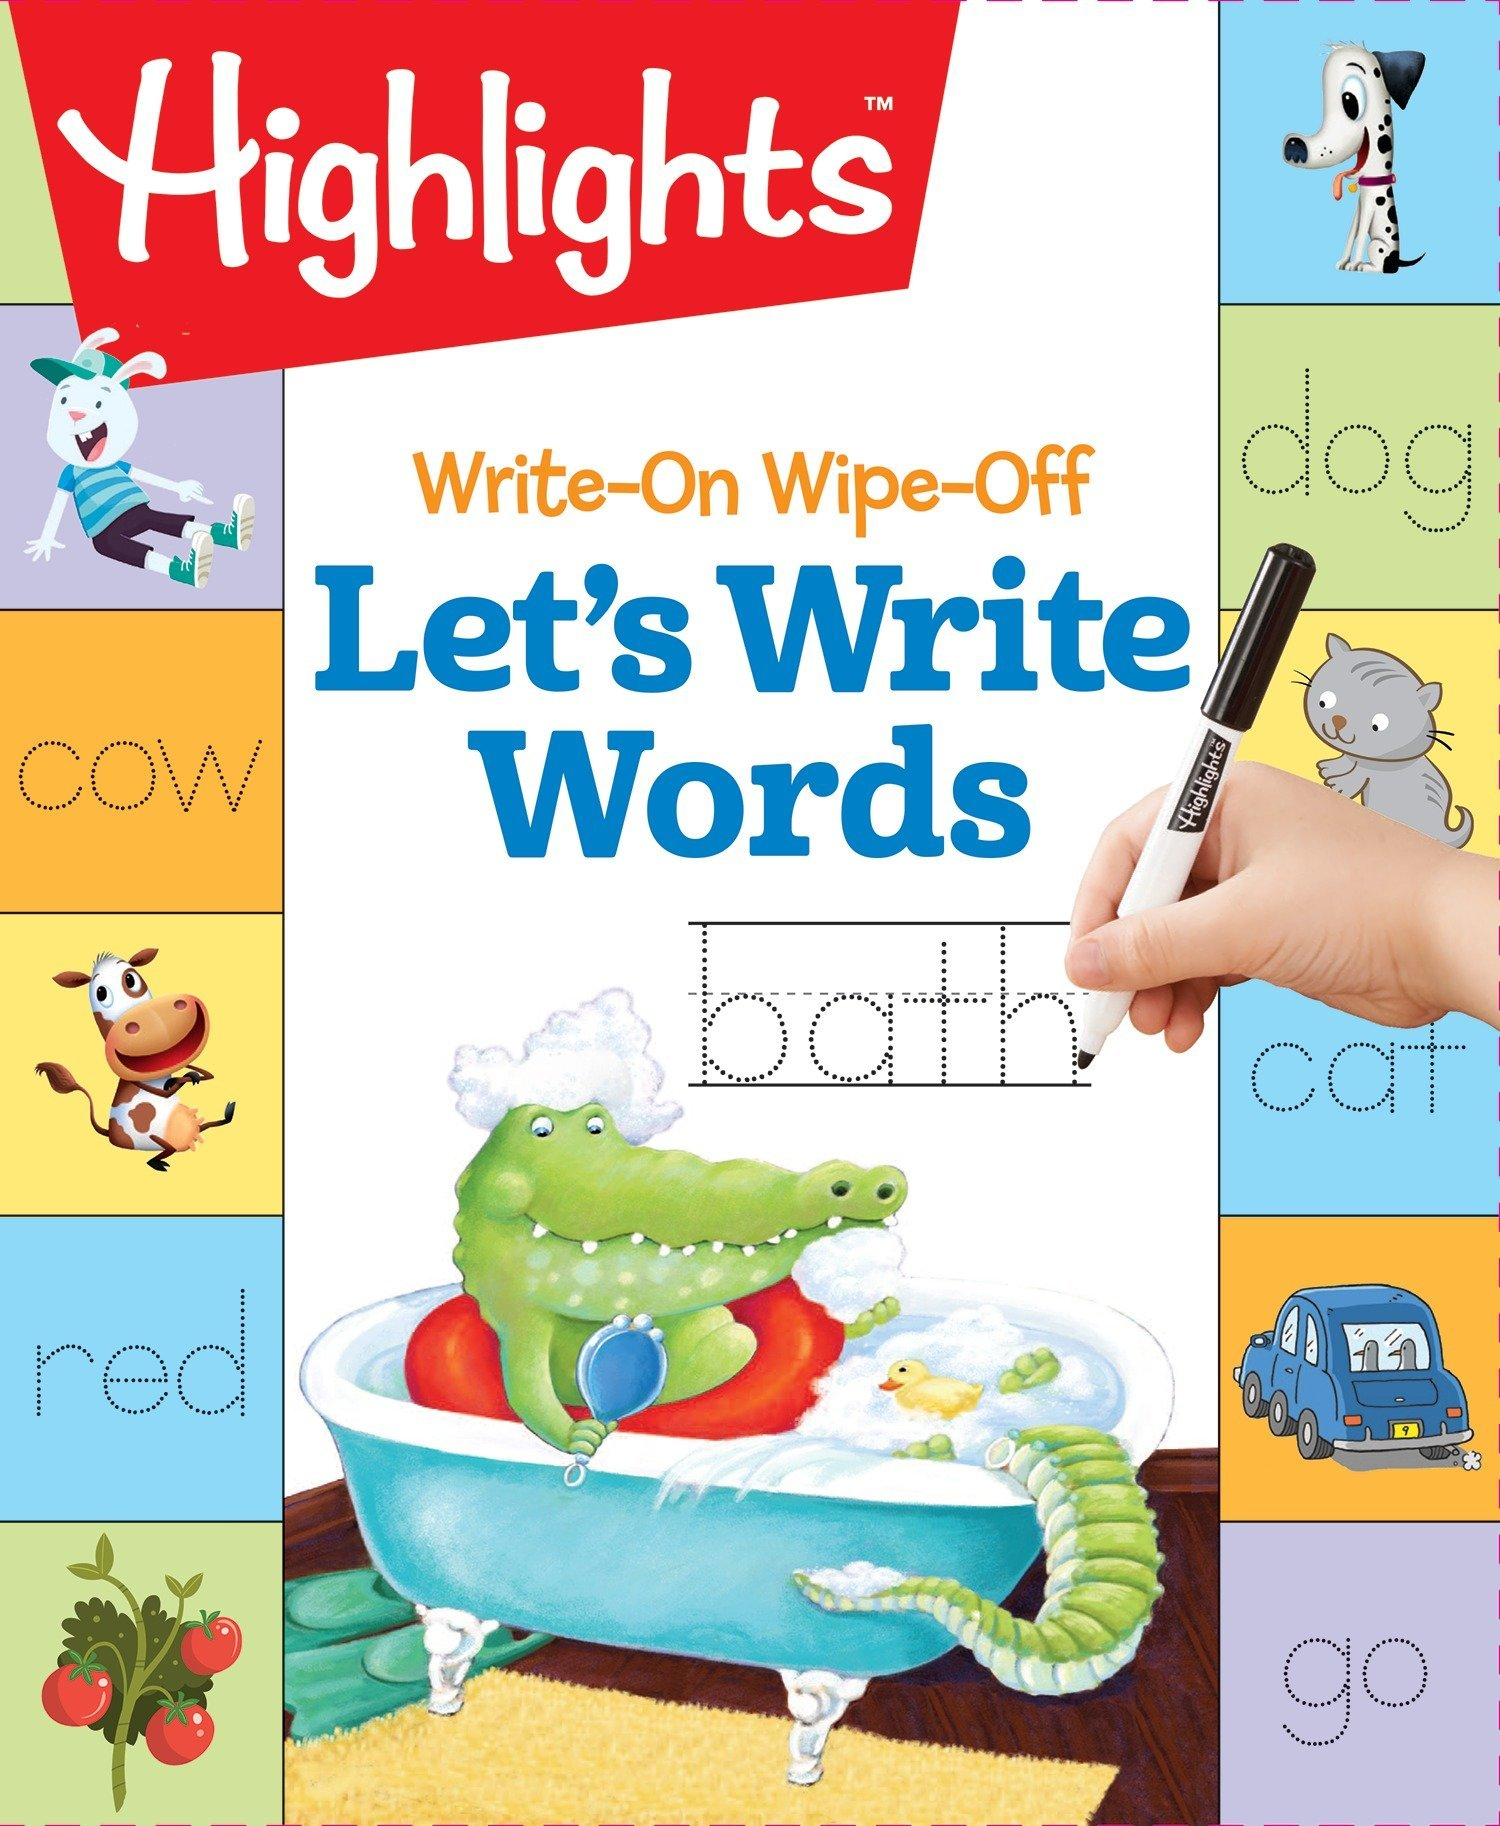 Let s use kind words to each other clipart jpg transparent download Write-On Wipe-Off Let\'s Write Words (HighlightsTM Write-On Wipe-Off ... jpg transparent download